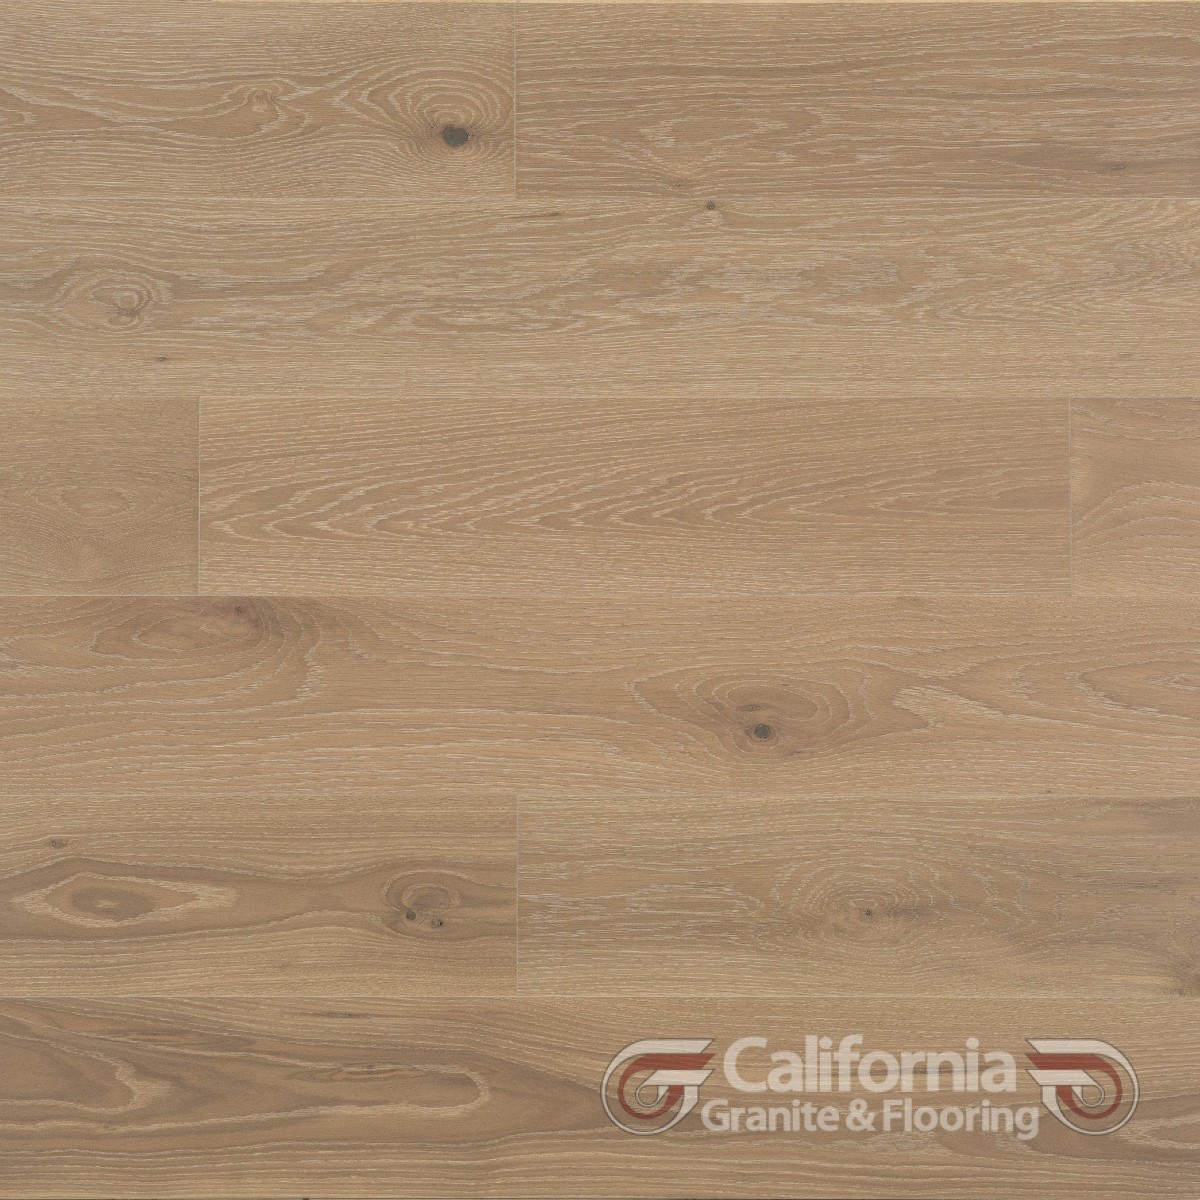 hardwood-flooring-white-oak-hula-hoop-character-brushed-2